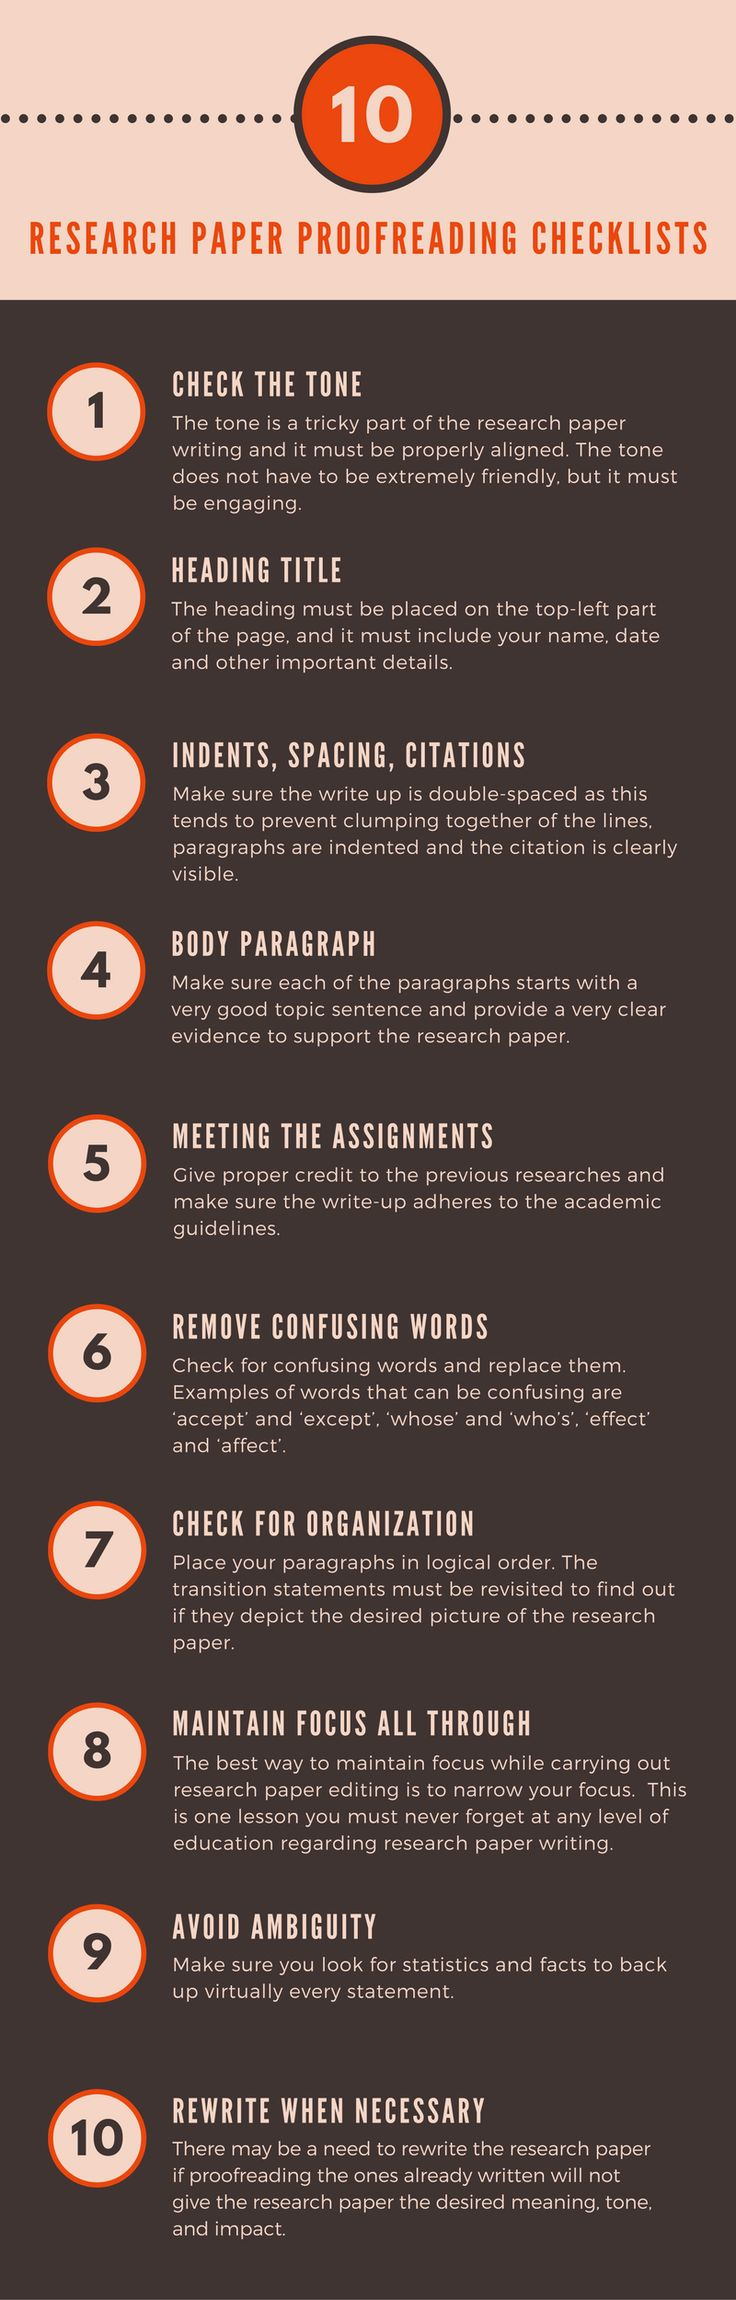 best proofreading checklists images teaching the importance of proofreading your academic research paper and essay can never be overemphasized our top 10 research paper proofreading checklists